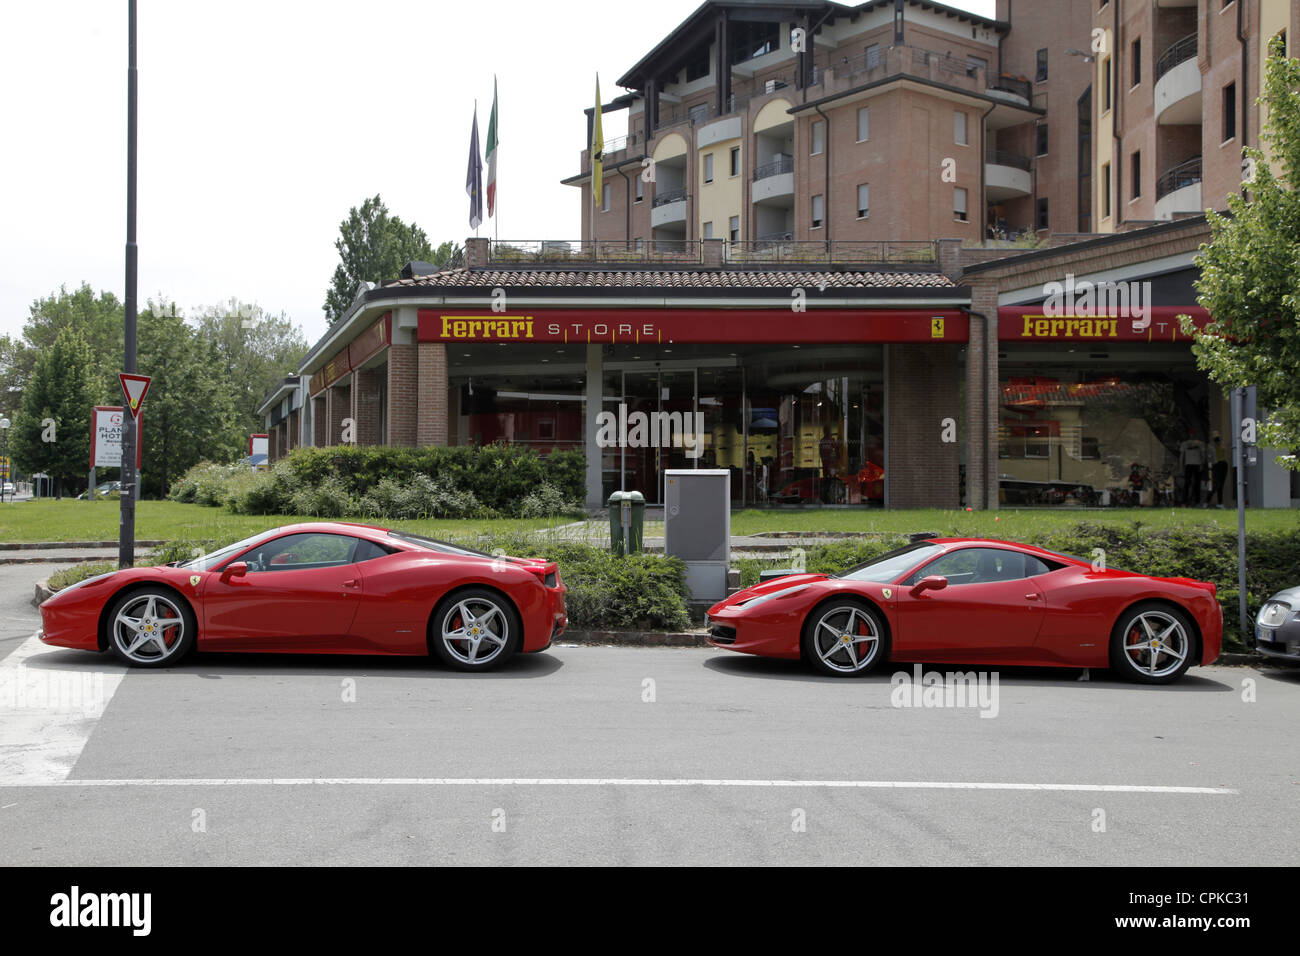 Rouge Ferrari 458 Maranello ITALIE VOITURES & STORE 08 Mai 2012 Photo Stock